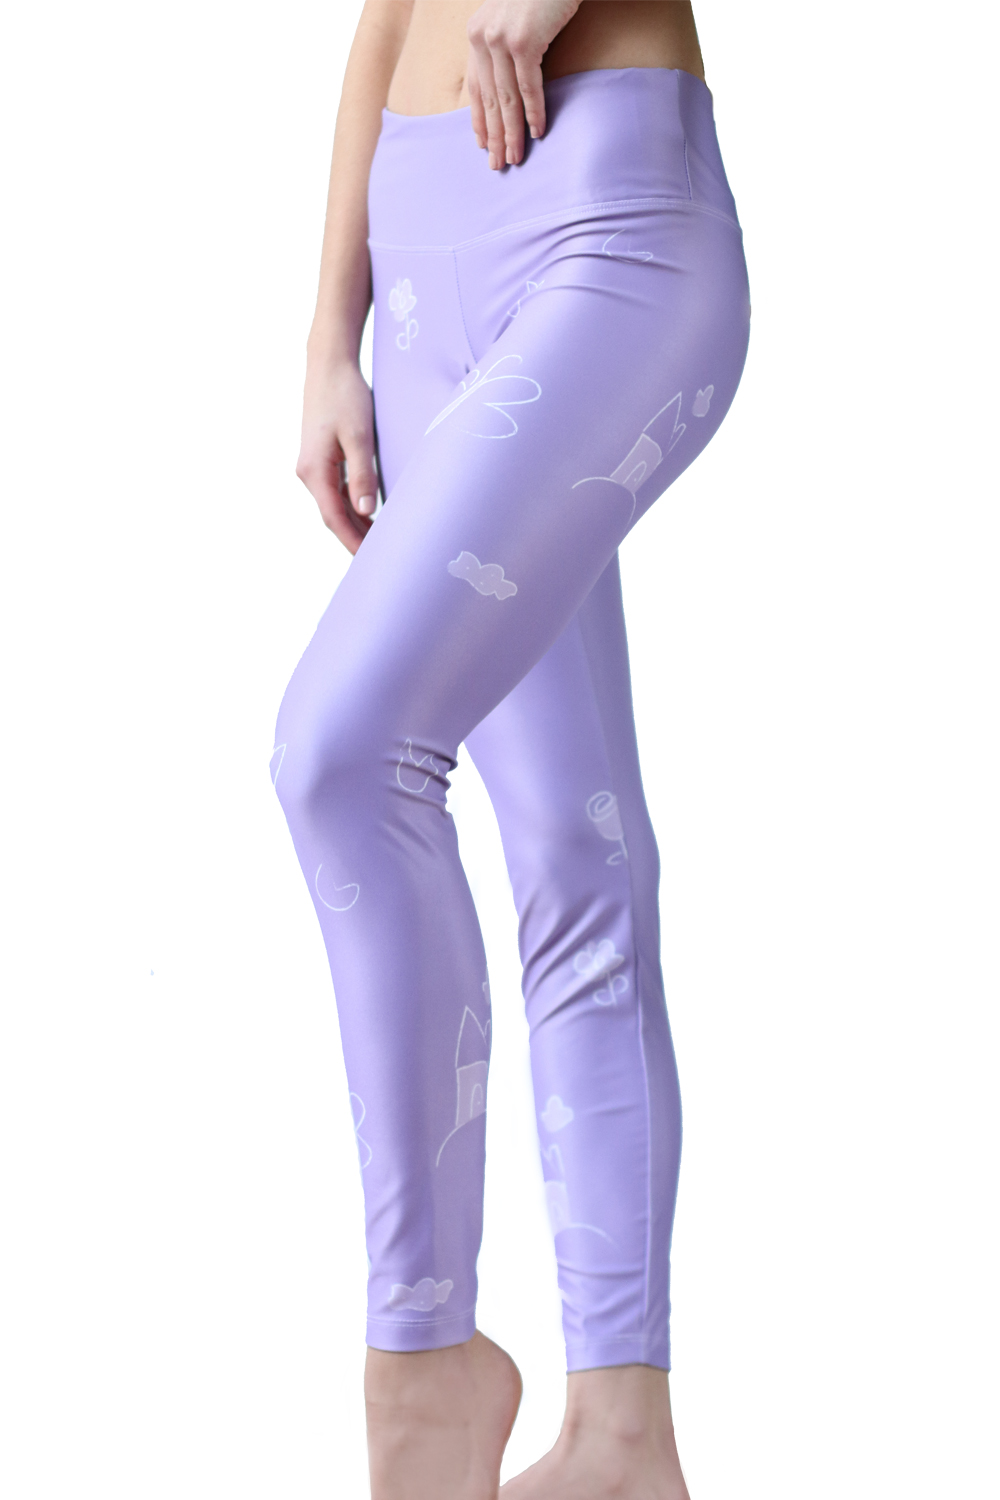 Scoria-Pond-leggings-1-1-web.jpg